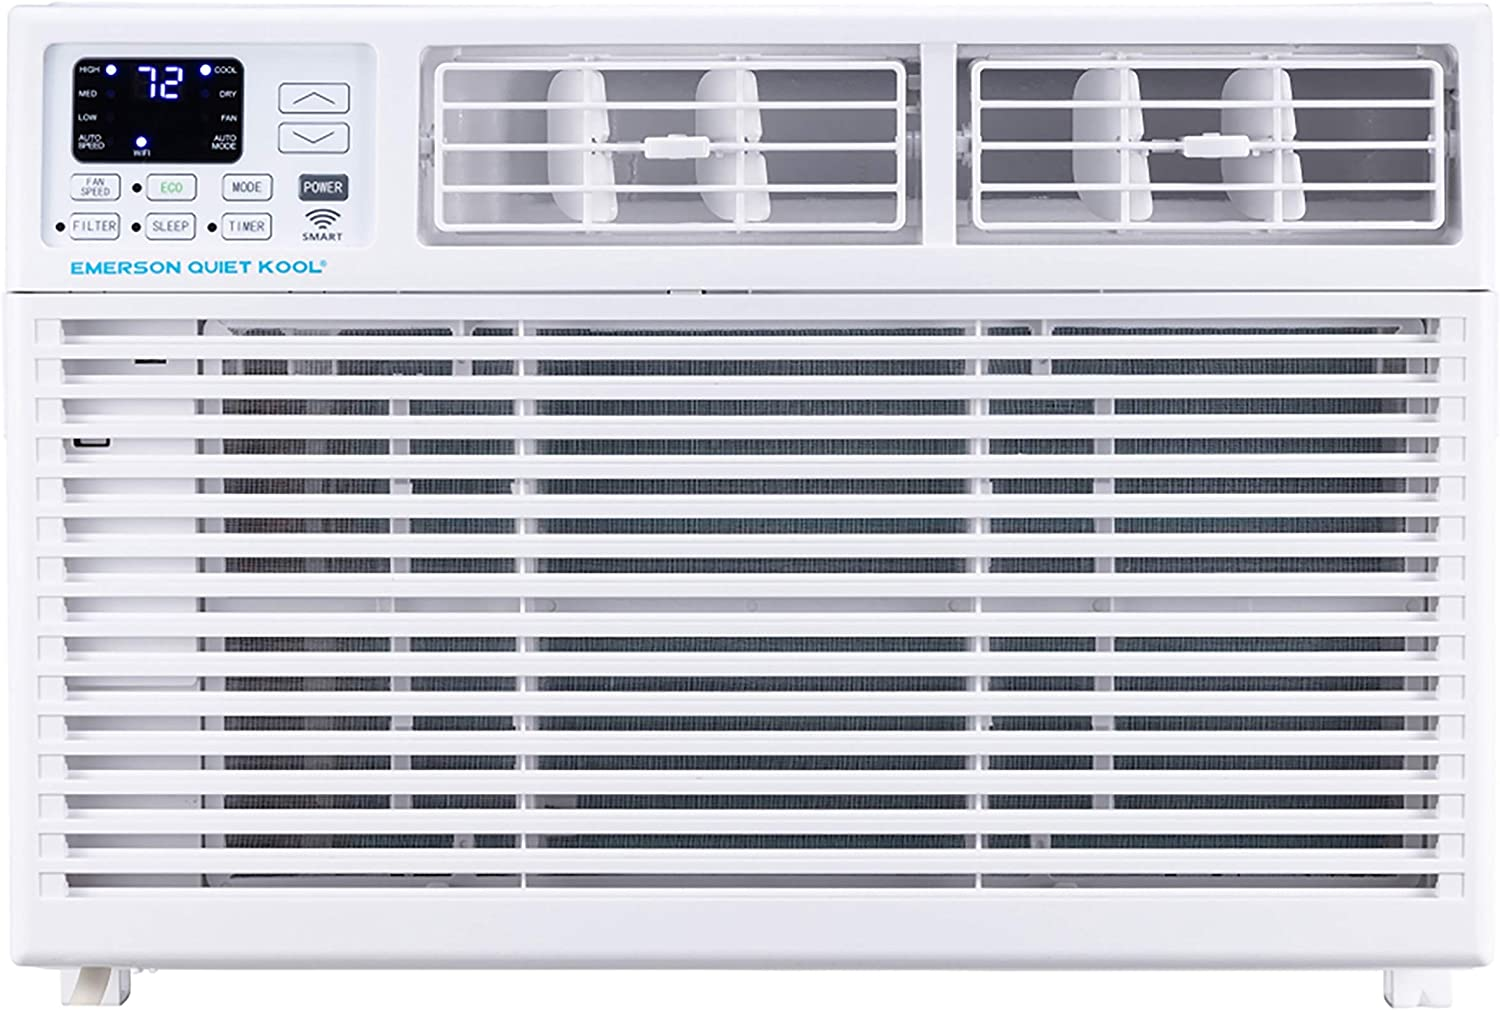 Emerson Quiet Kool EARC6RSE1 6,000 BTU 115V SMART Window Air Conditioner with Remote, Wi-Fi, and Voice Control, White